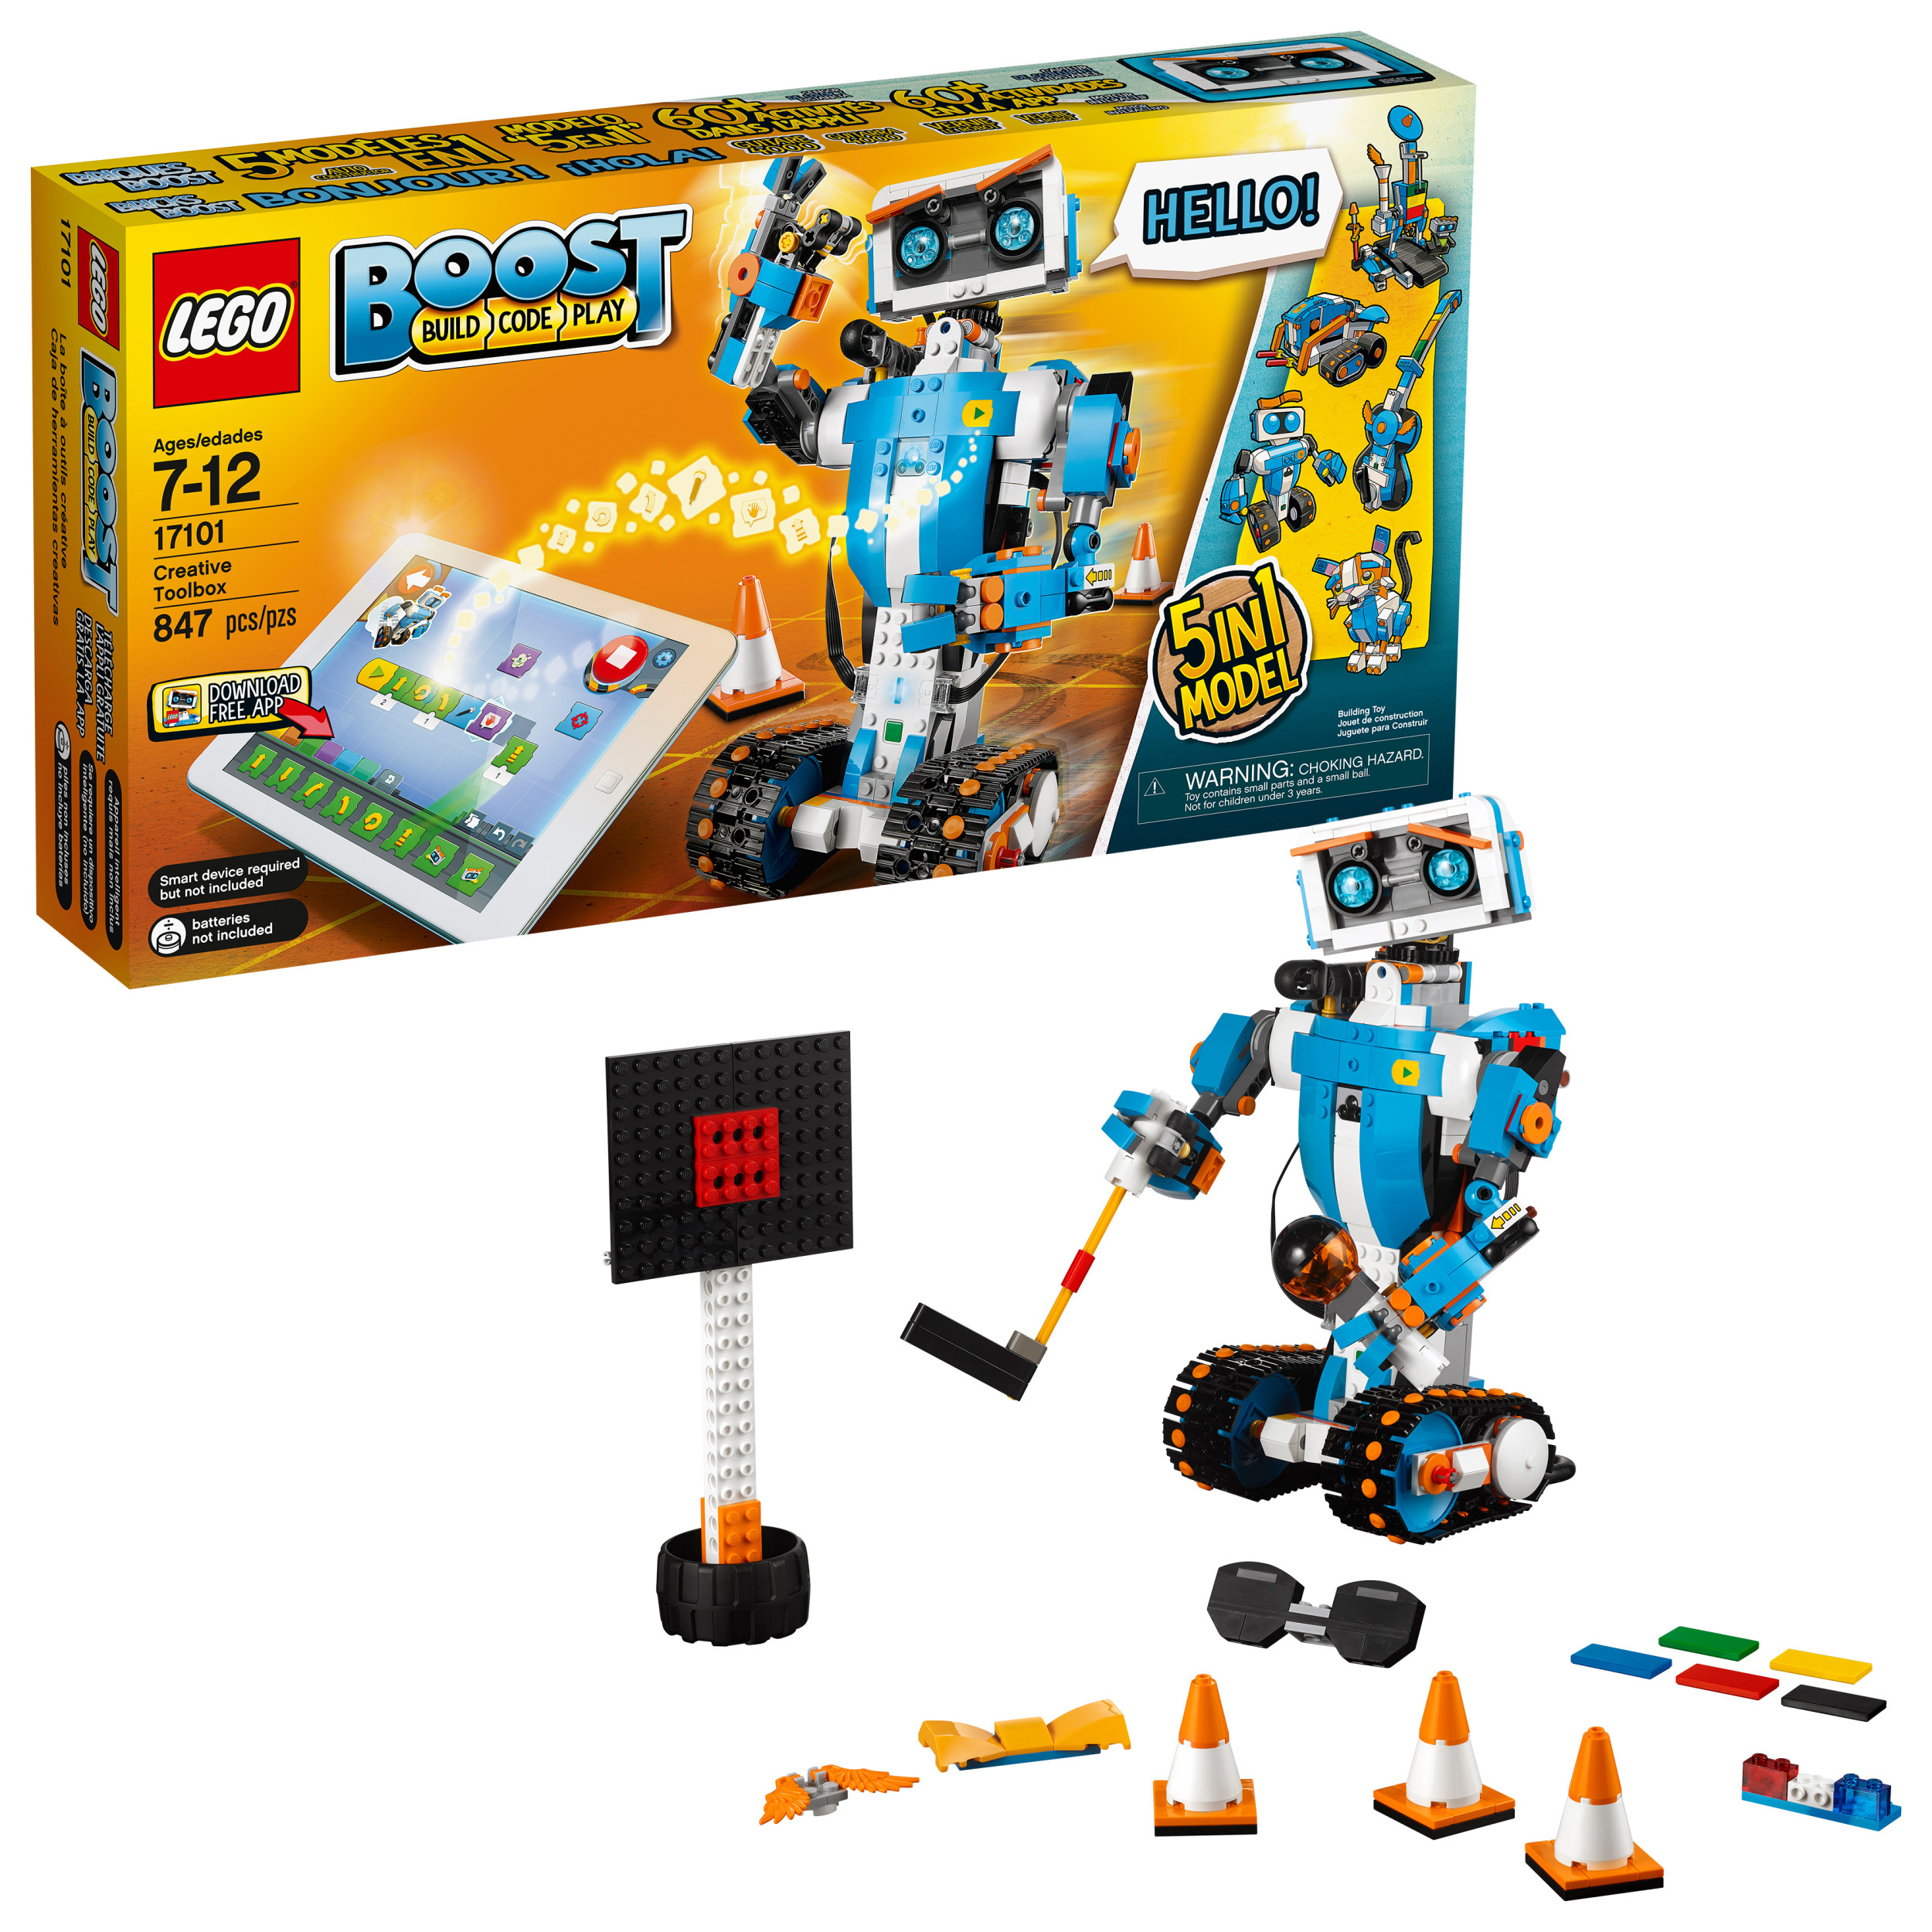 Lego Boost Creative Toolbox 17101 Fun Robot Building Set and Educational Coding Kit for Kids, Award-Winning... by LEGO System Inc